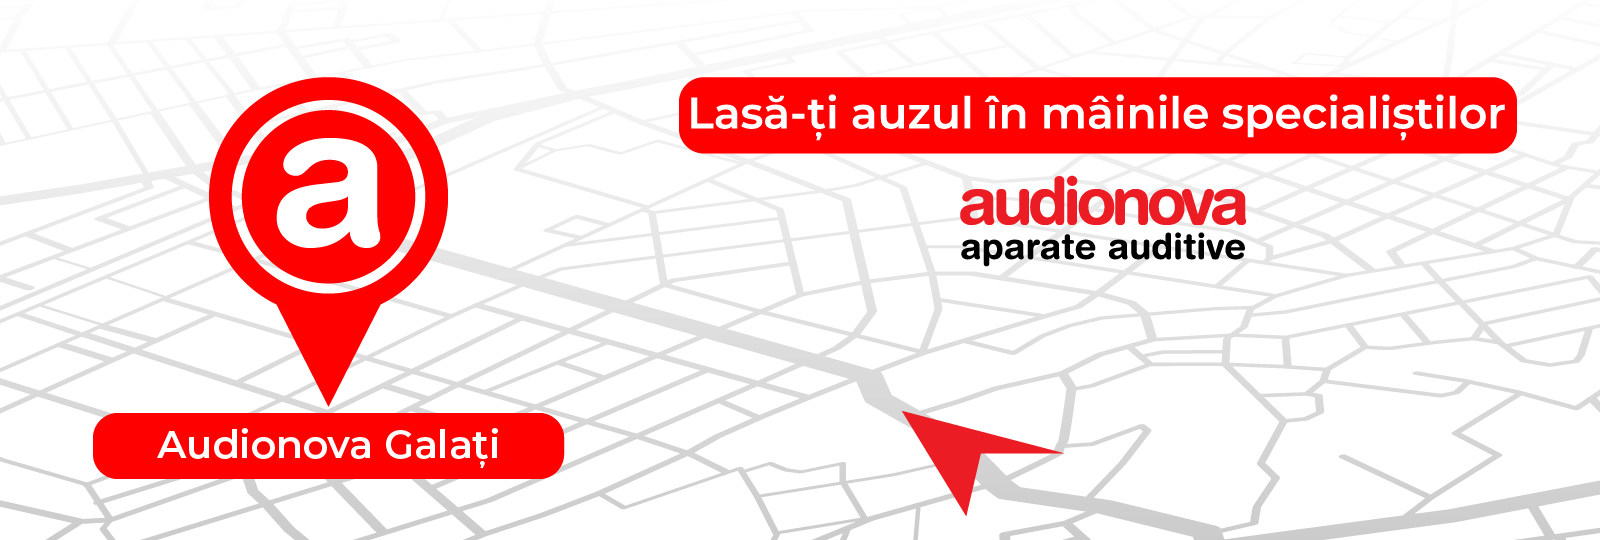 aparate auditive galati